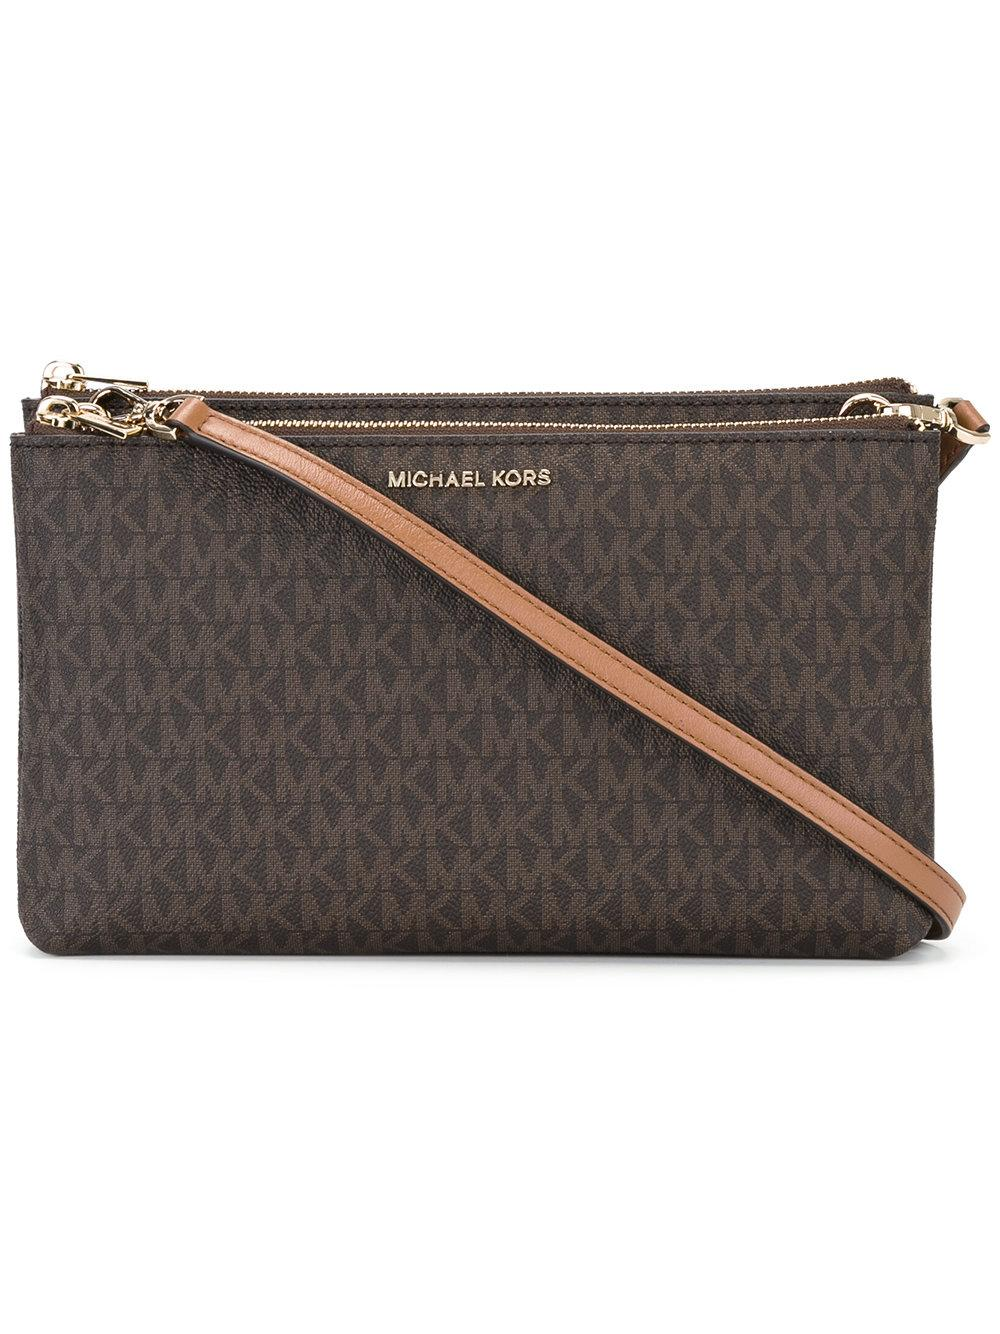 Michael Kors Logo Print Crossbody Bag In Brown